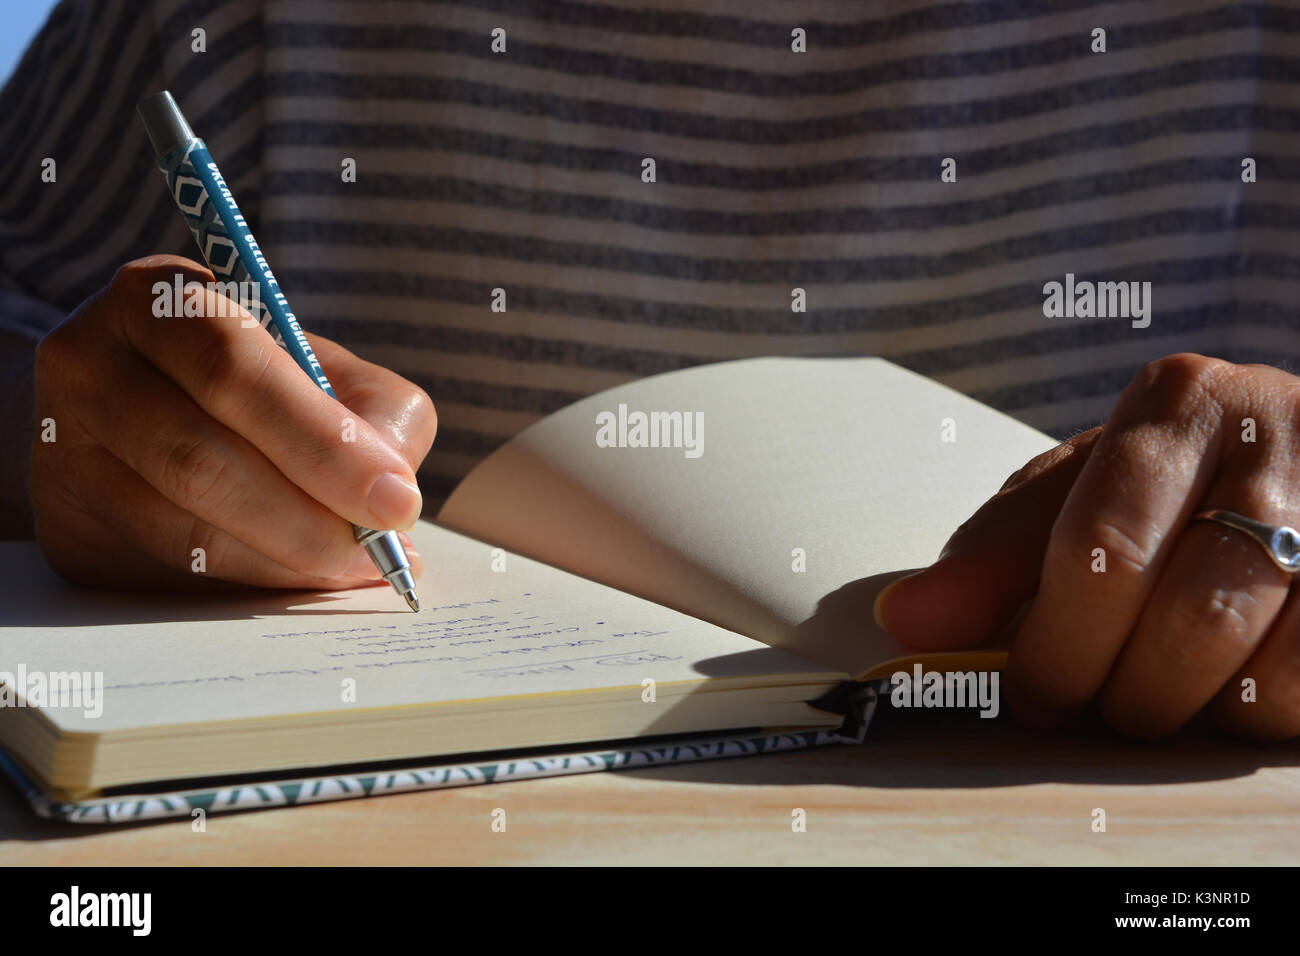 phD student writing list of aims in a notebook / journal - Stock Image